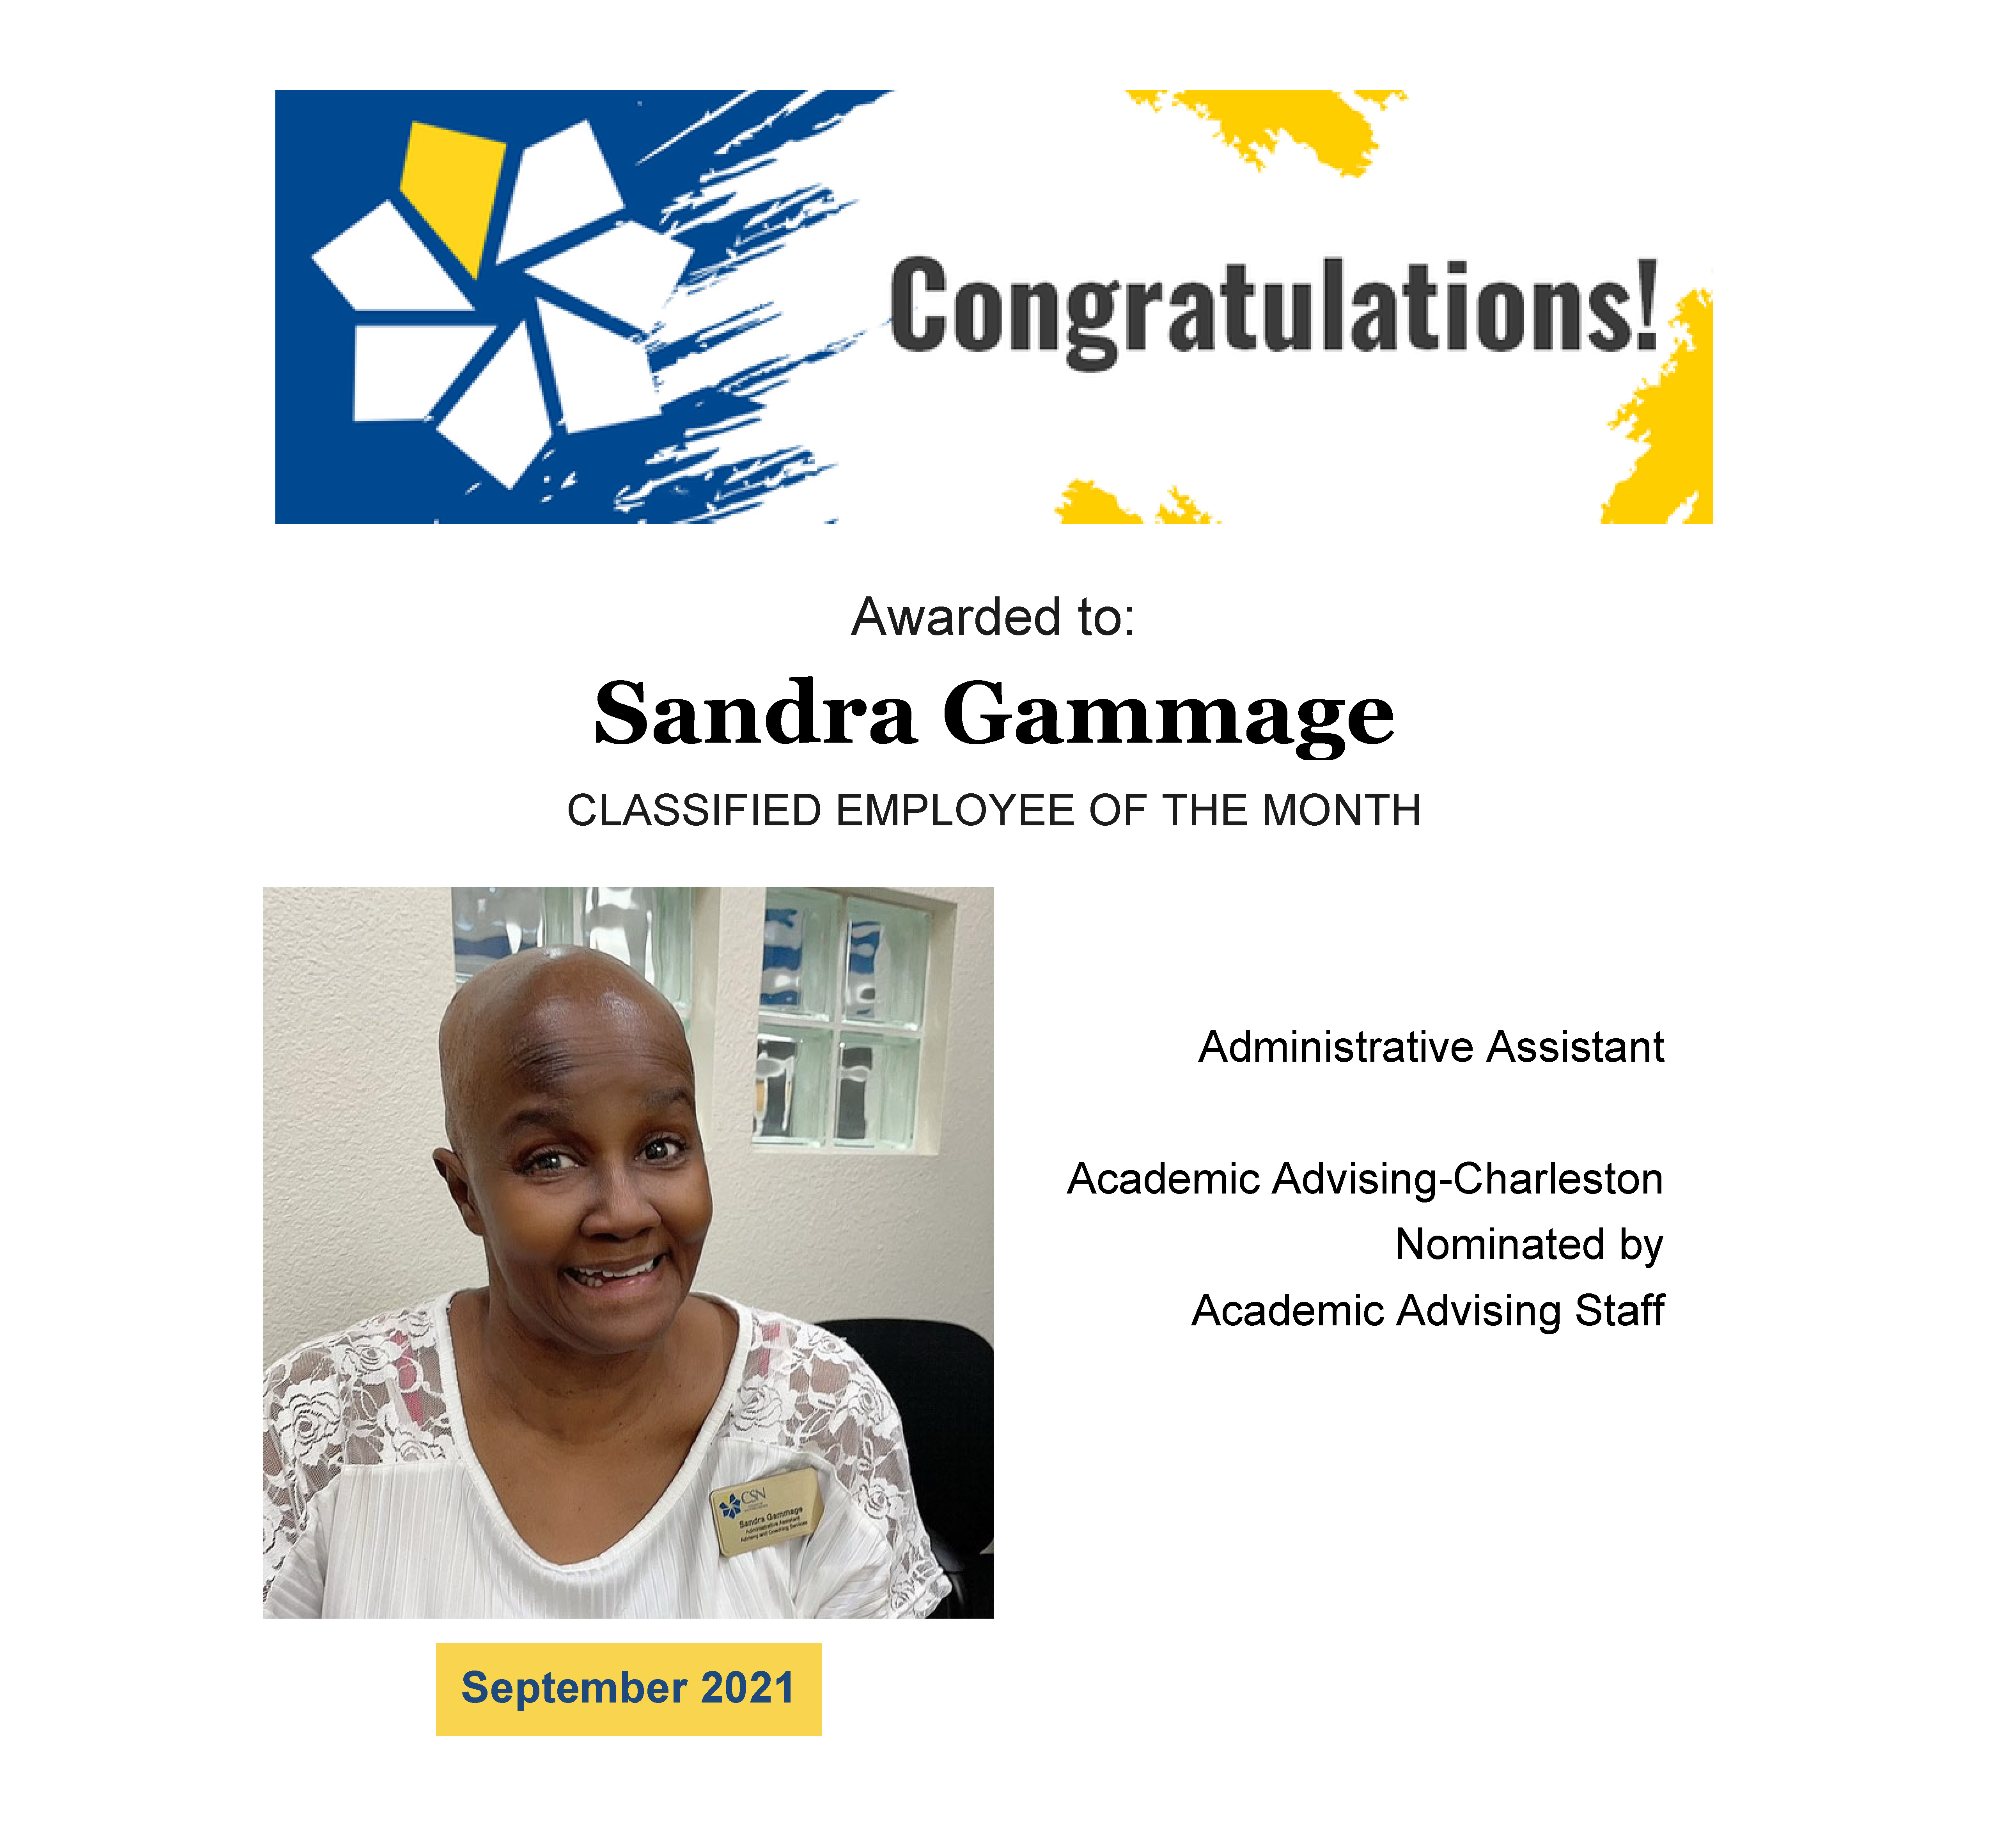 A picture of Sandra Gammage